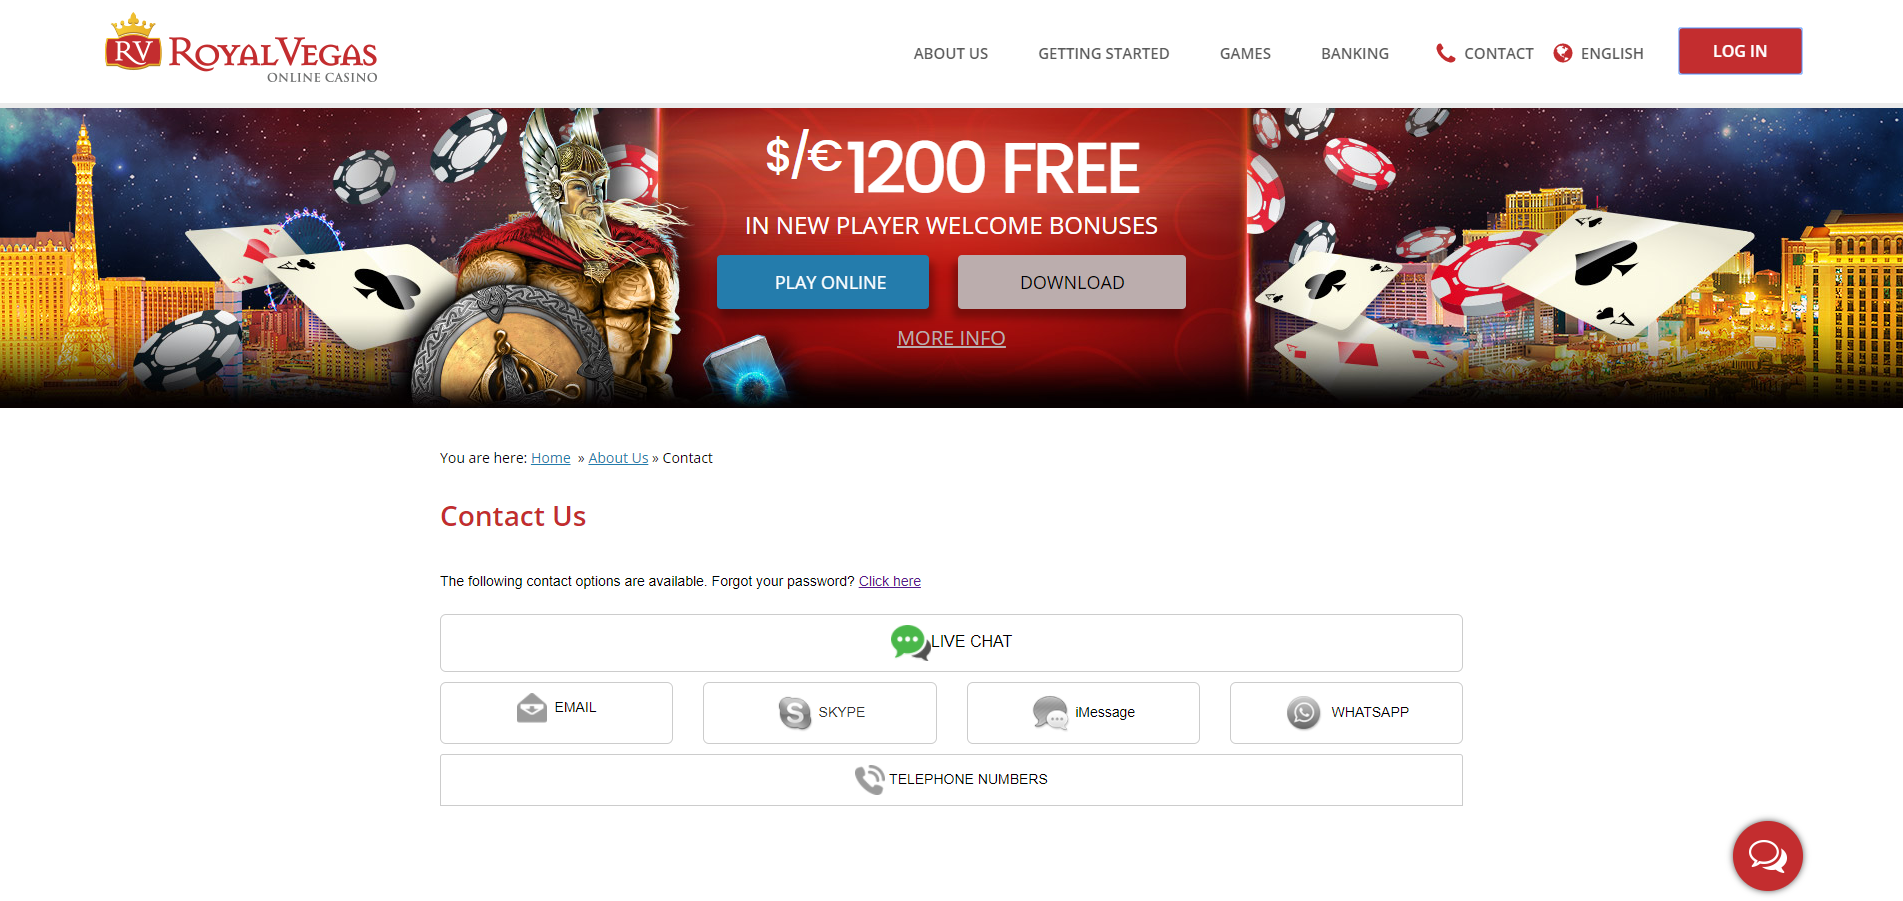 Rembrandt Casino Online Review With Promotions & Bonuses